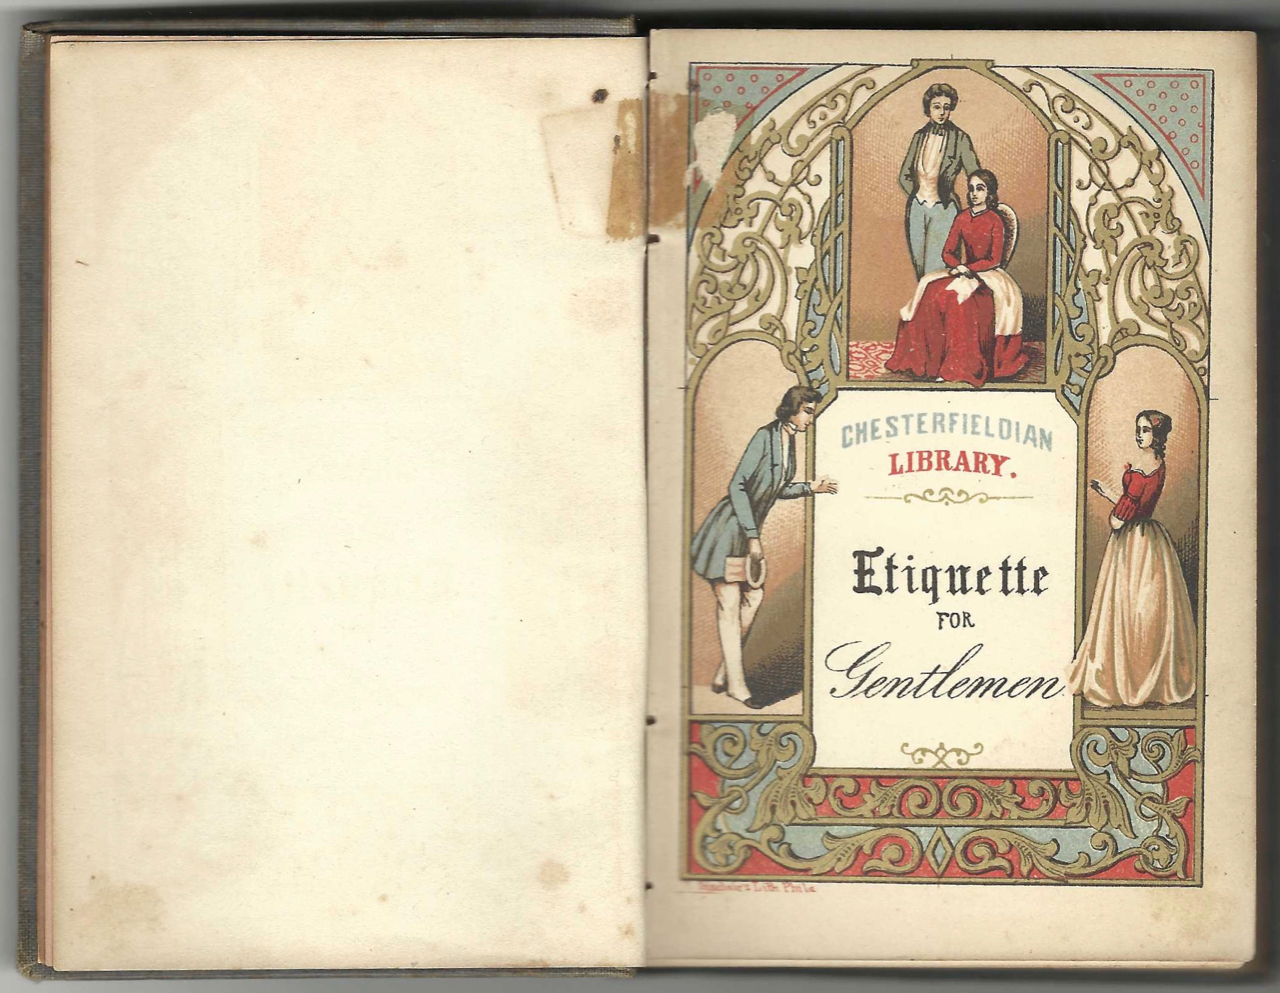 Etiquette for Gentlemen, or short rules and reflections for conduct in society. By a Gentleman. a Gentleman, lithographer, Thomas S. Sinclair.